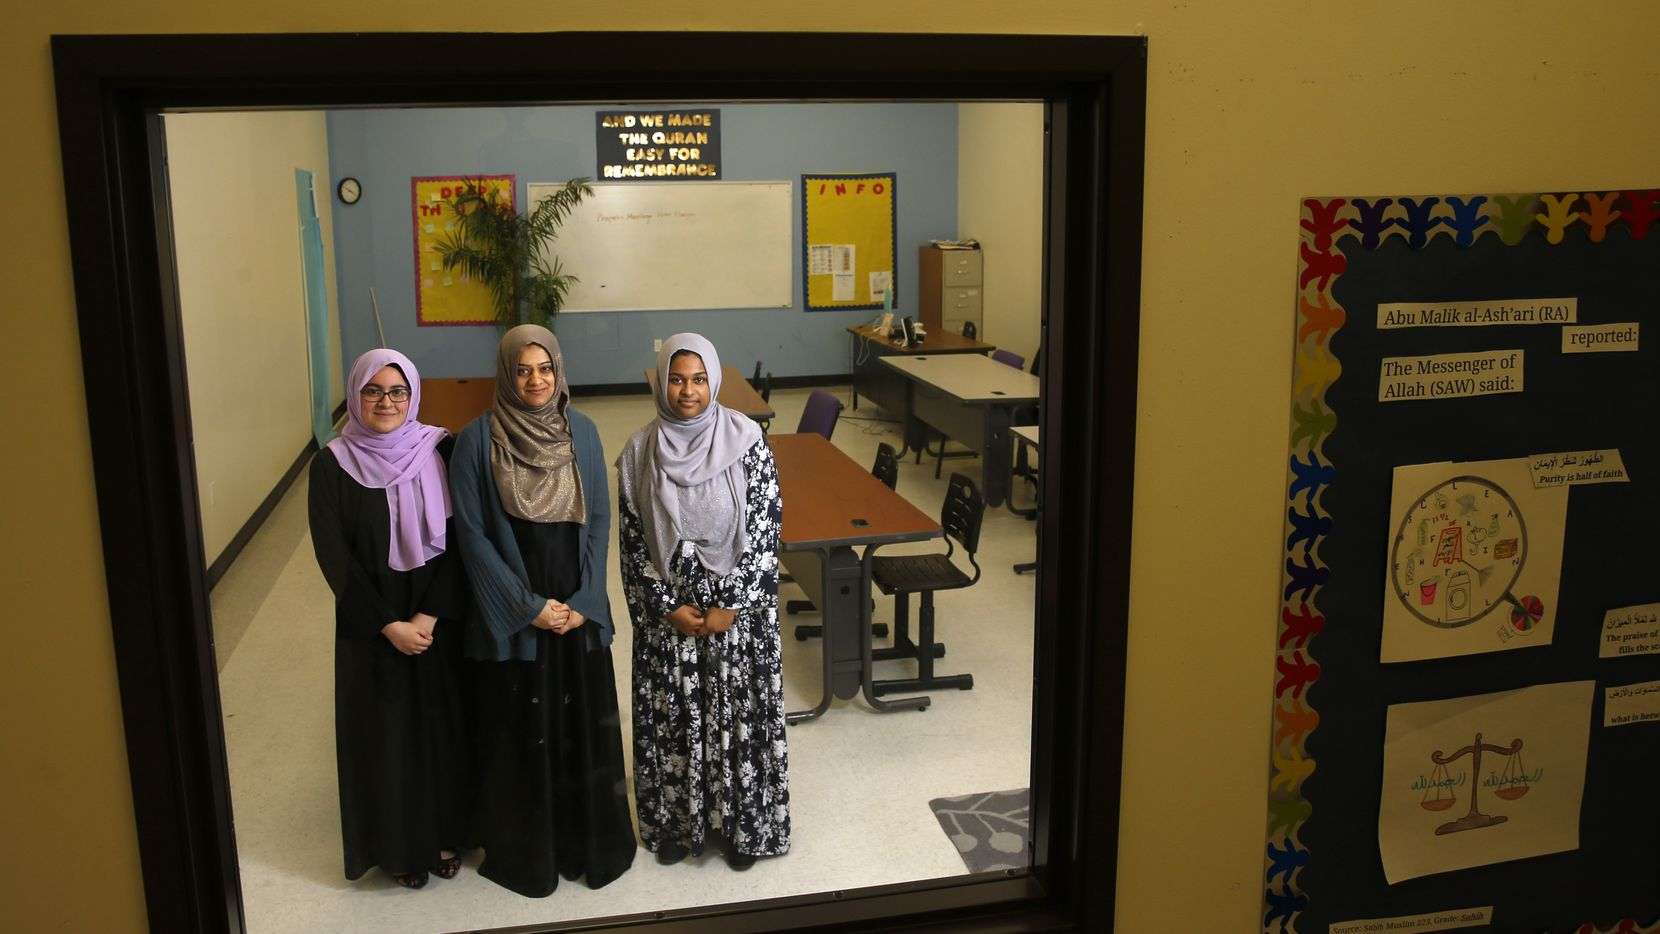 Viewed through a window, student Iman Ikram (from left), principal Fawzia Belal and student Sadia Sarwer are three of the figures who make Qalam Collegiate Academy a unique place. Ikram was this past year's valedictorian, and Sarwer will be a senior next school year.